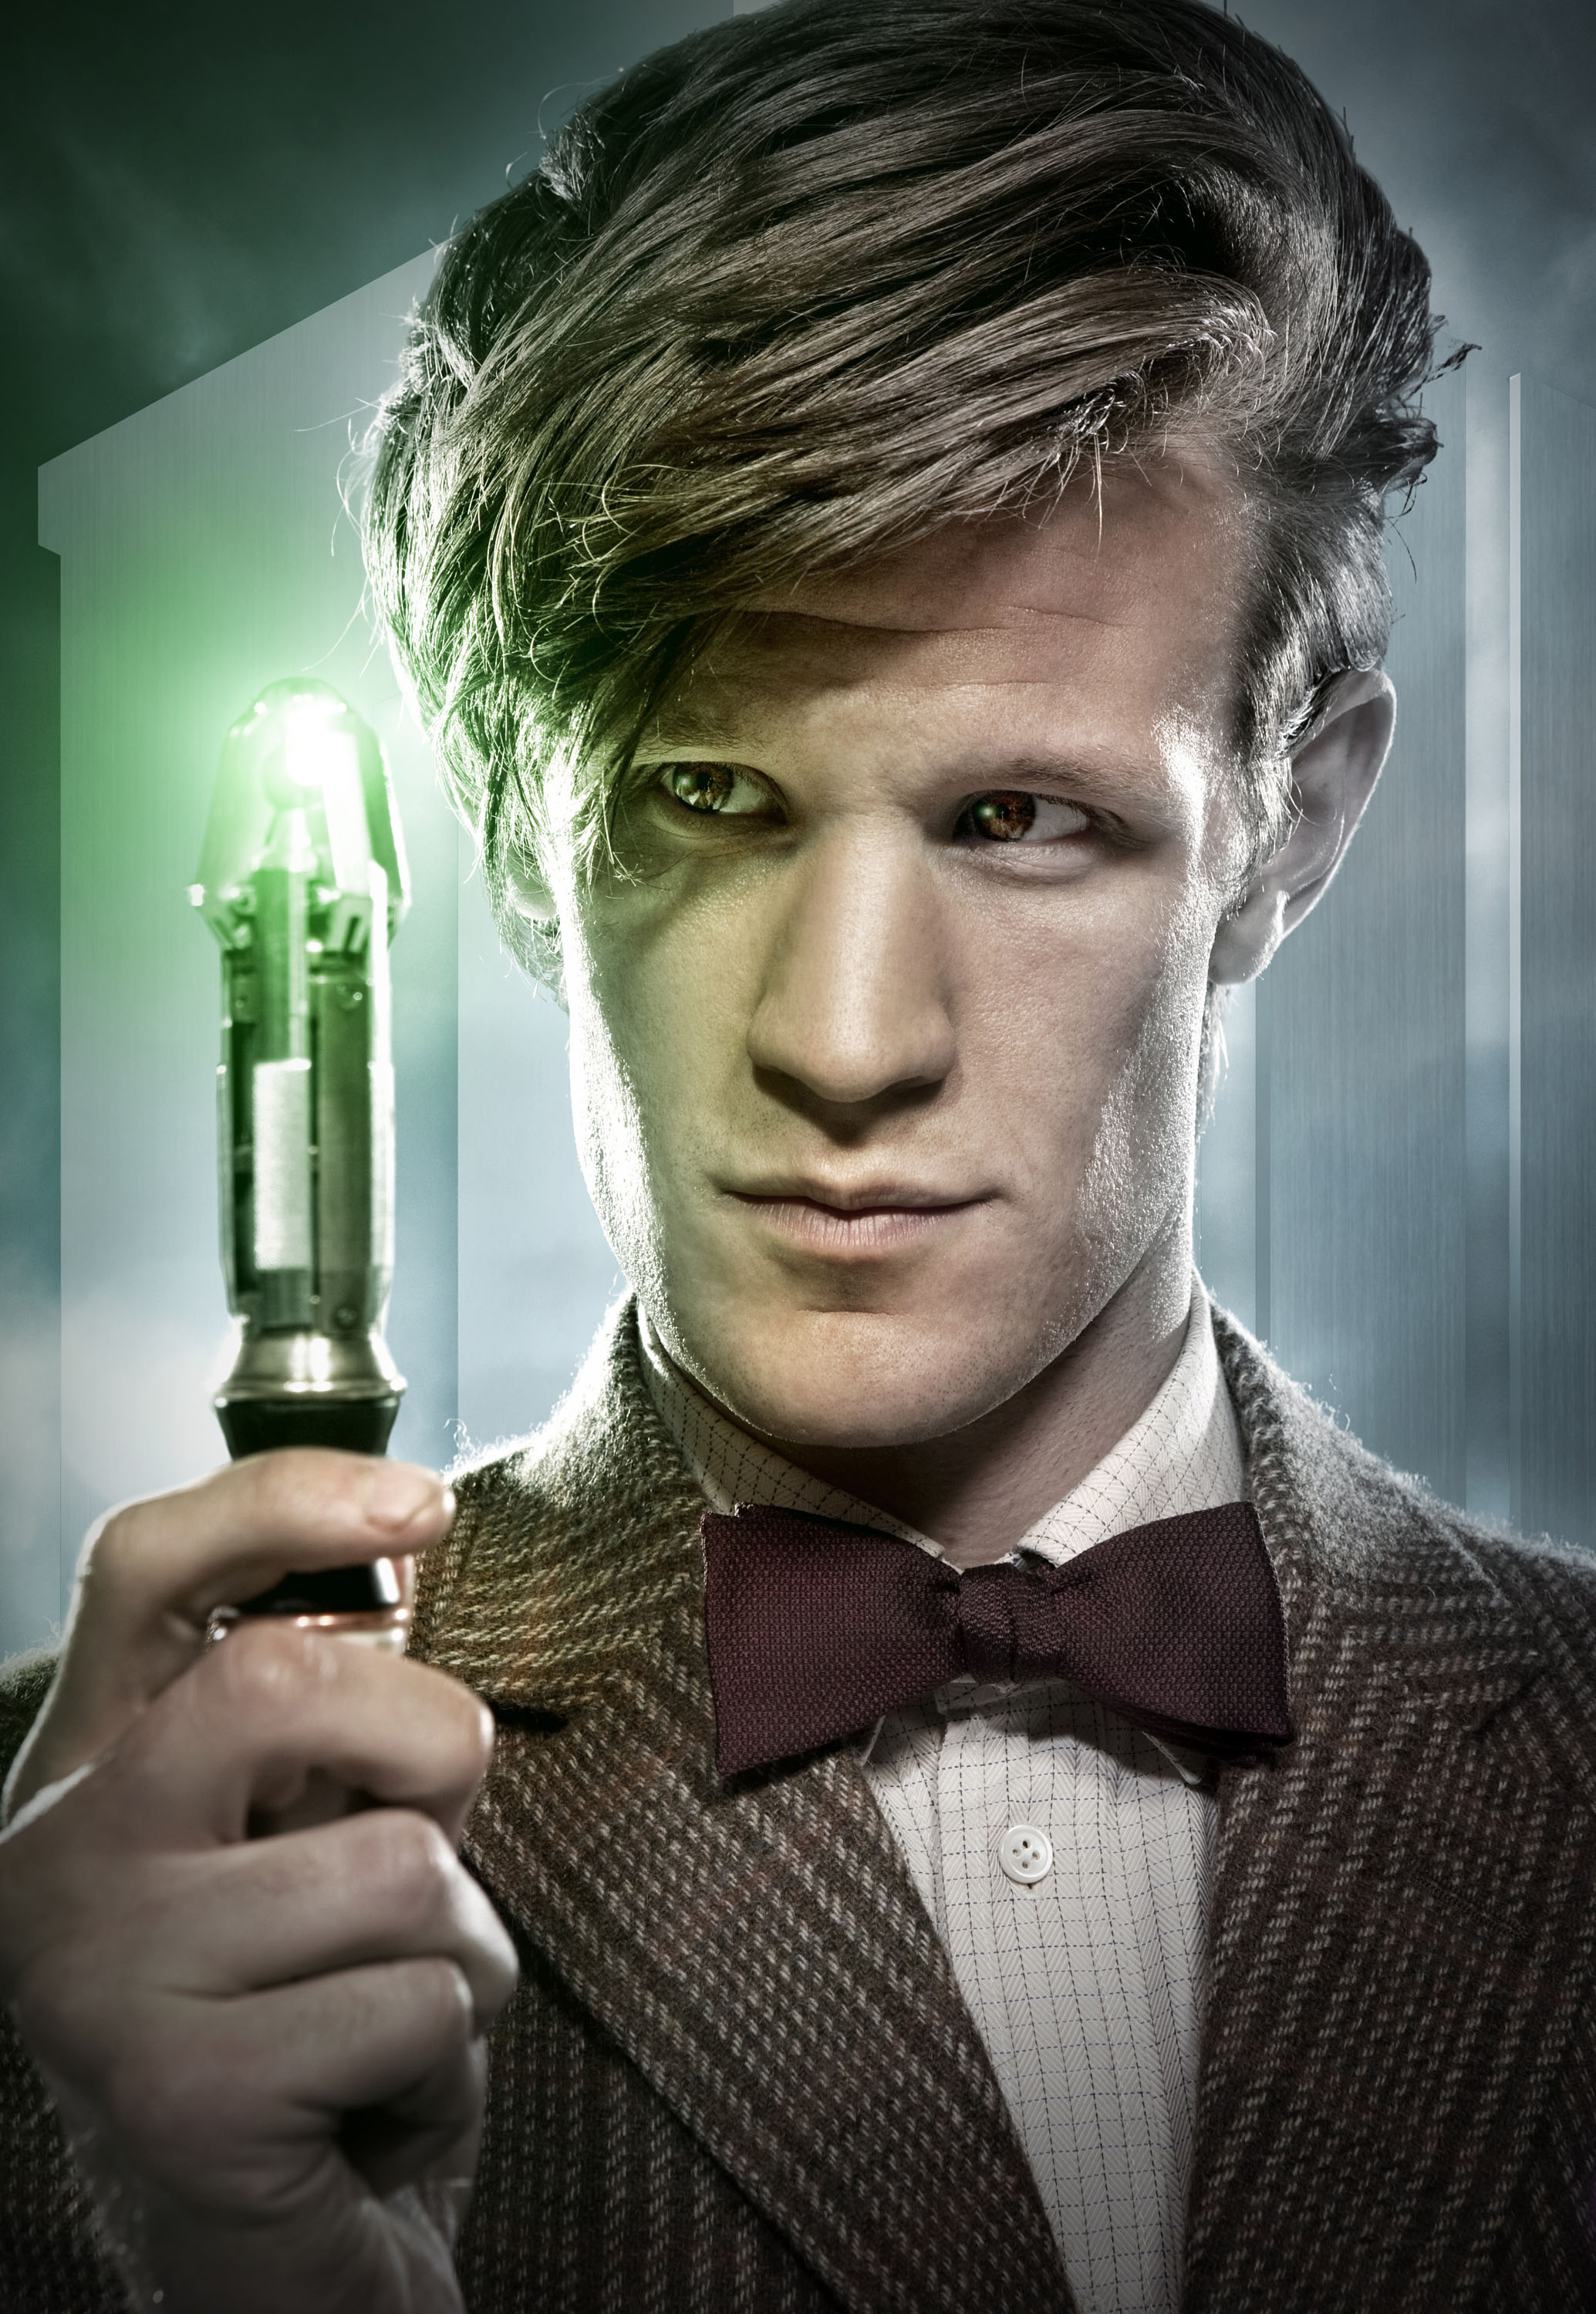 MATT SMITH: Well, it's changed